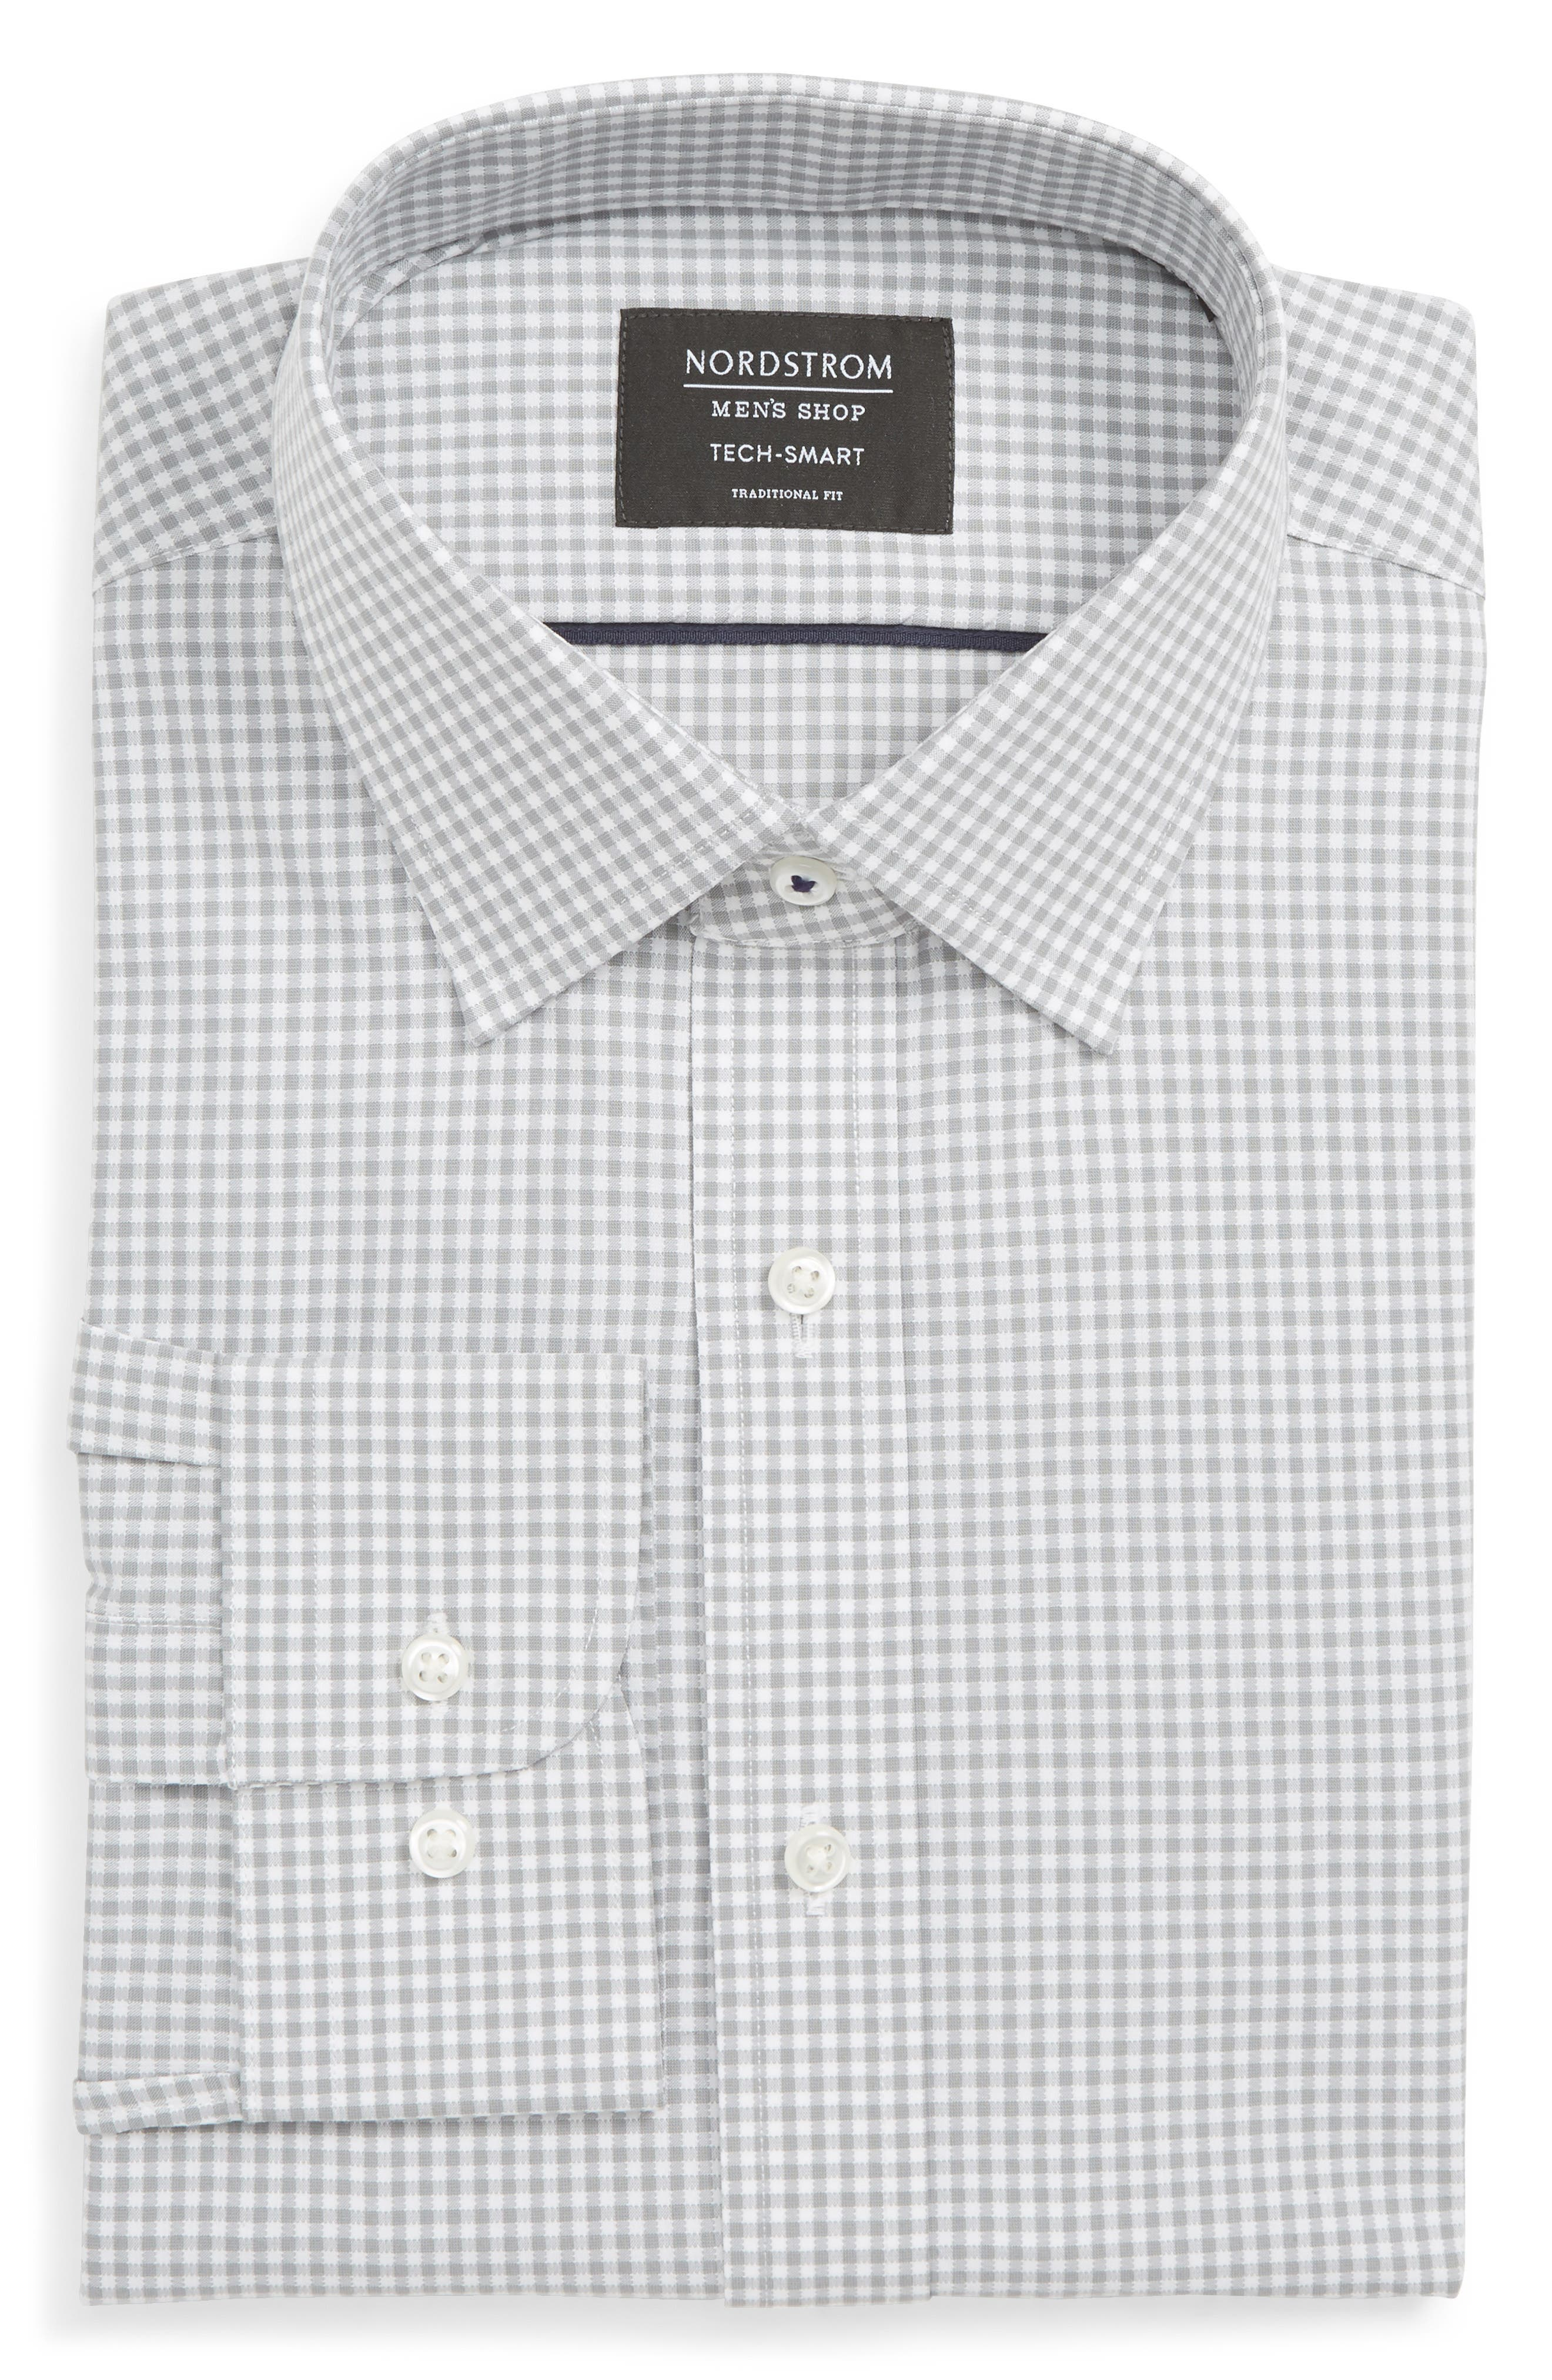 Tech-Smart Traditional Fit Check Stretch Dress Shirt,                         Main,                         color, GREY SLEET